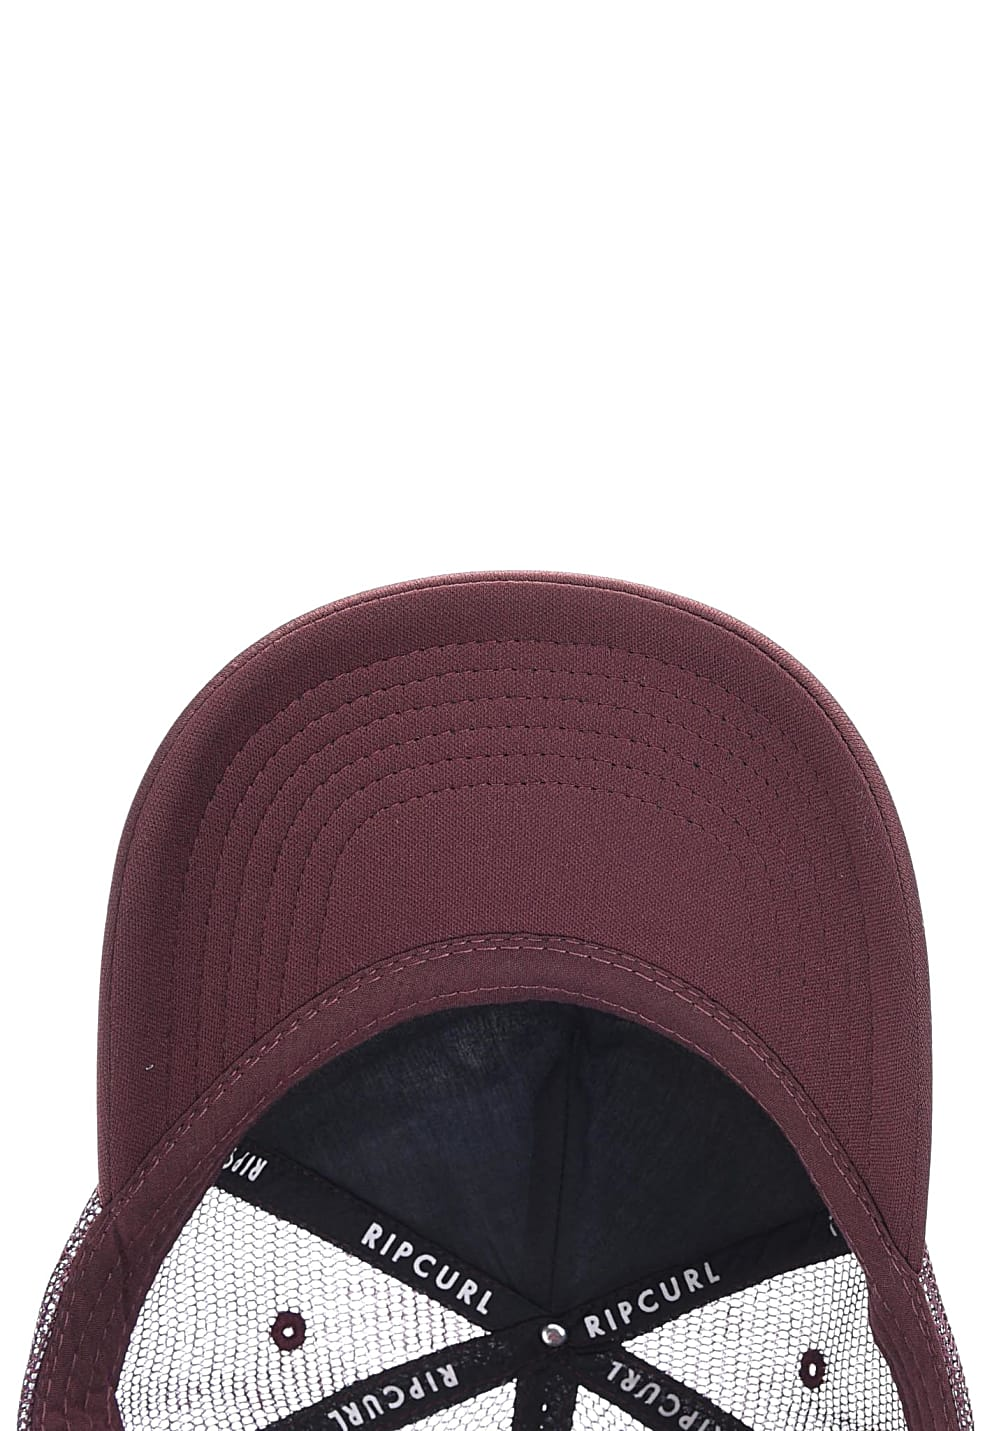 a2e7c297 ... Rip Curl Sublimation Photo - Trucker Cap for Kids Boys - Brown. Back to  Overview. 1; 2; 3; 4. Previous. Next